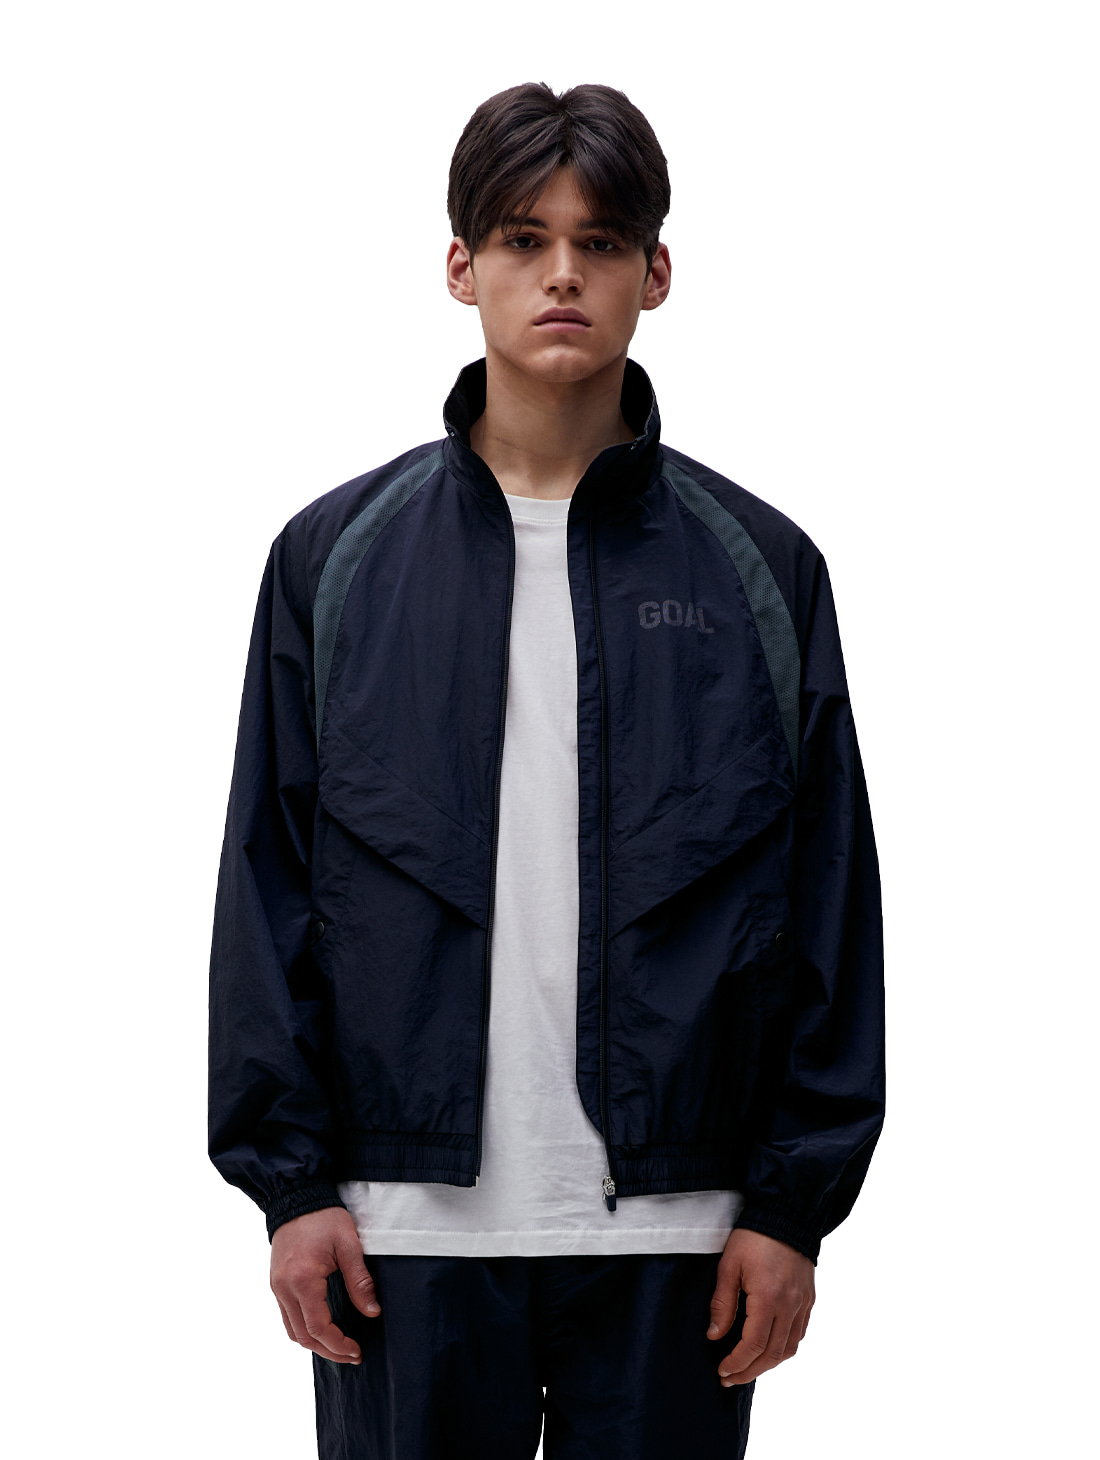 WARMUP JACKET - NAVY